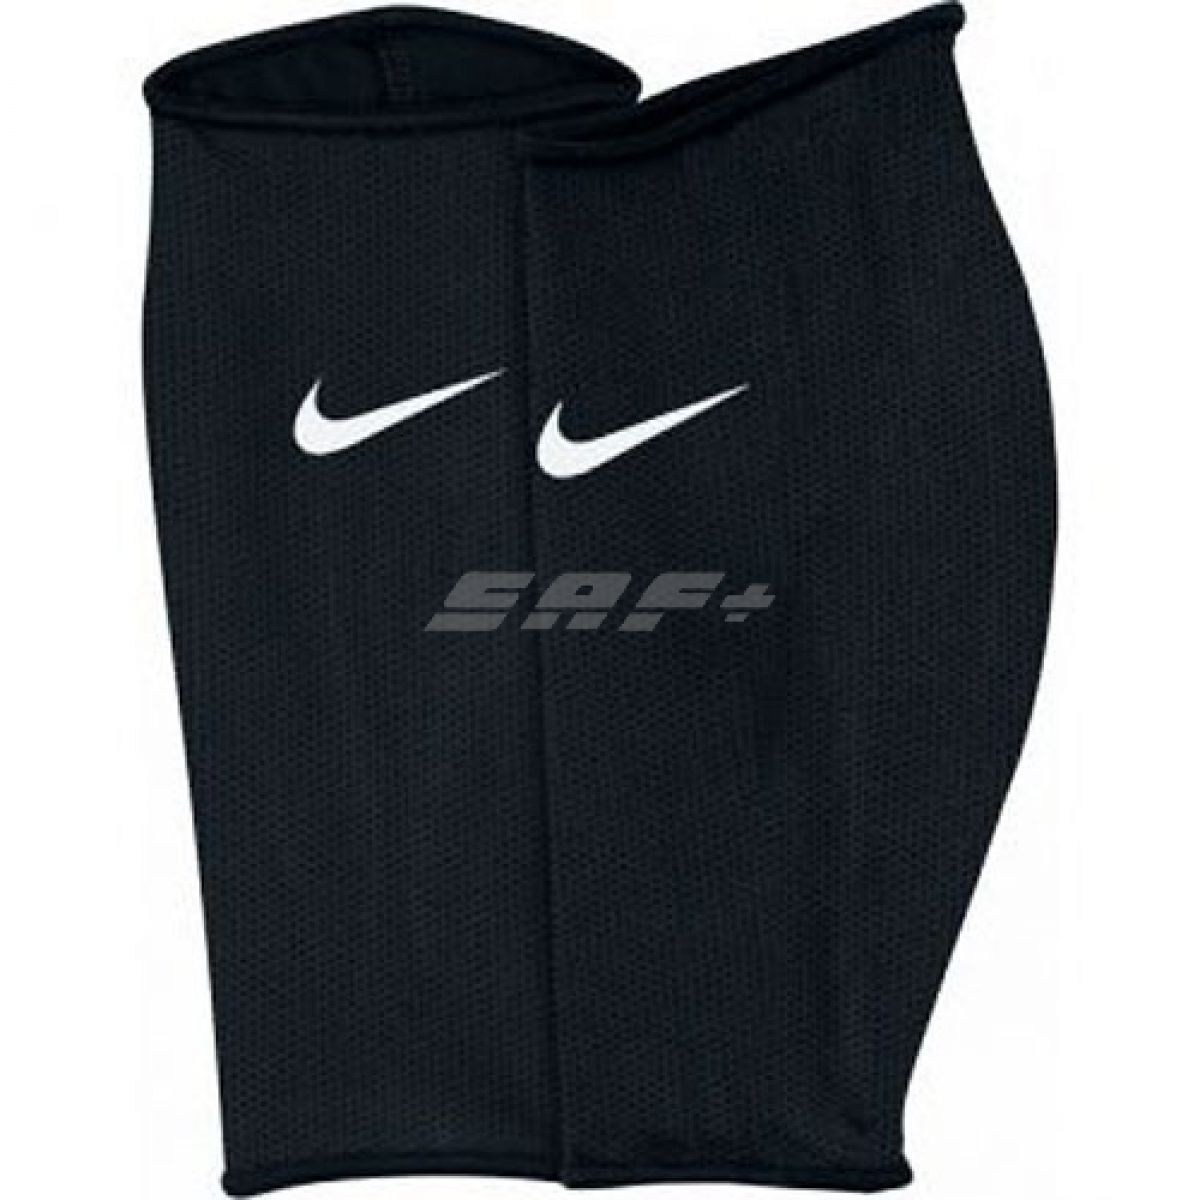 ЧУЛОК NIKE GUARD LOCK ELITE SLEEVE SR